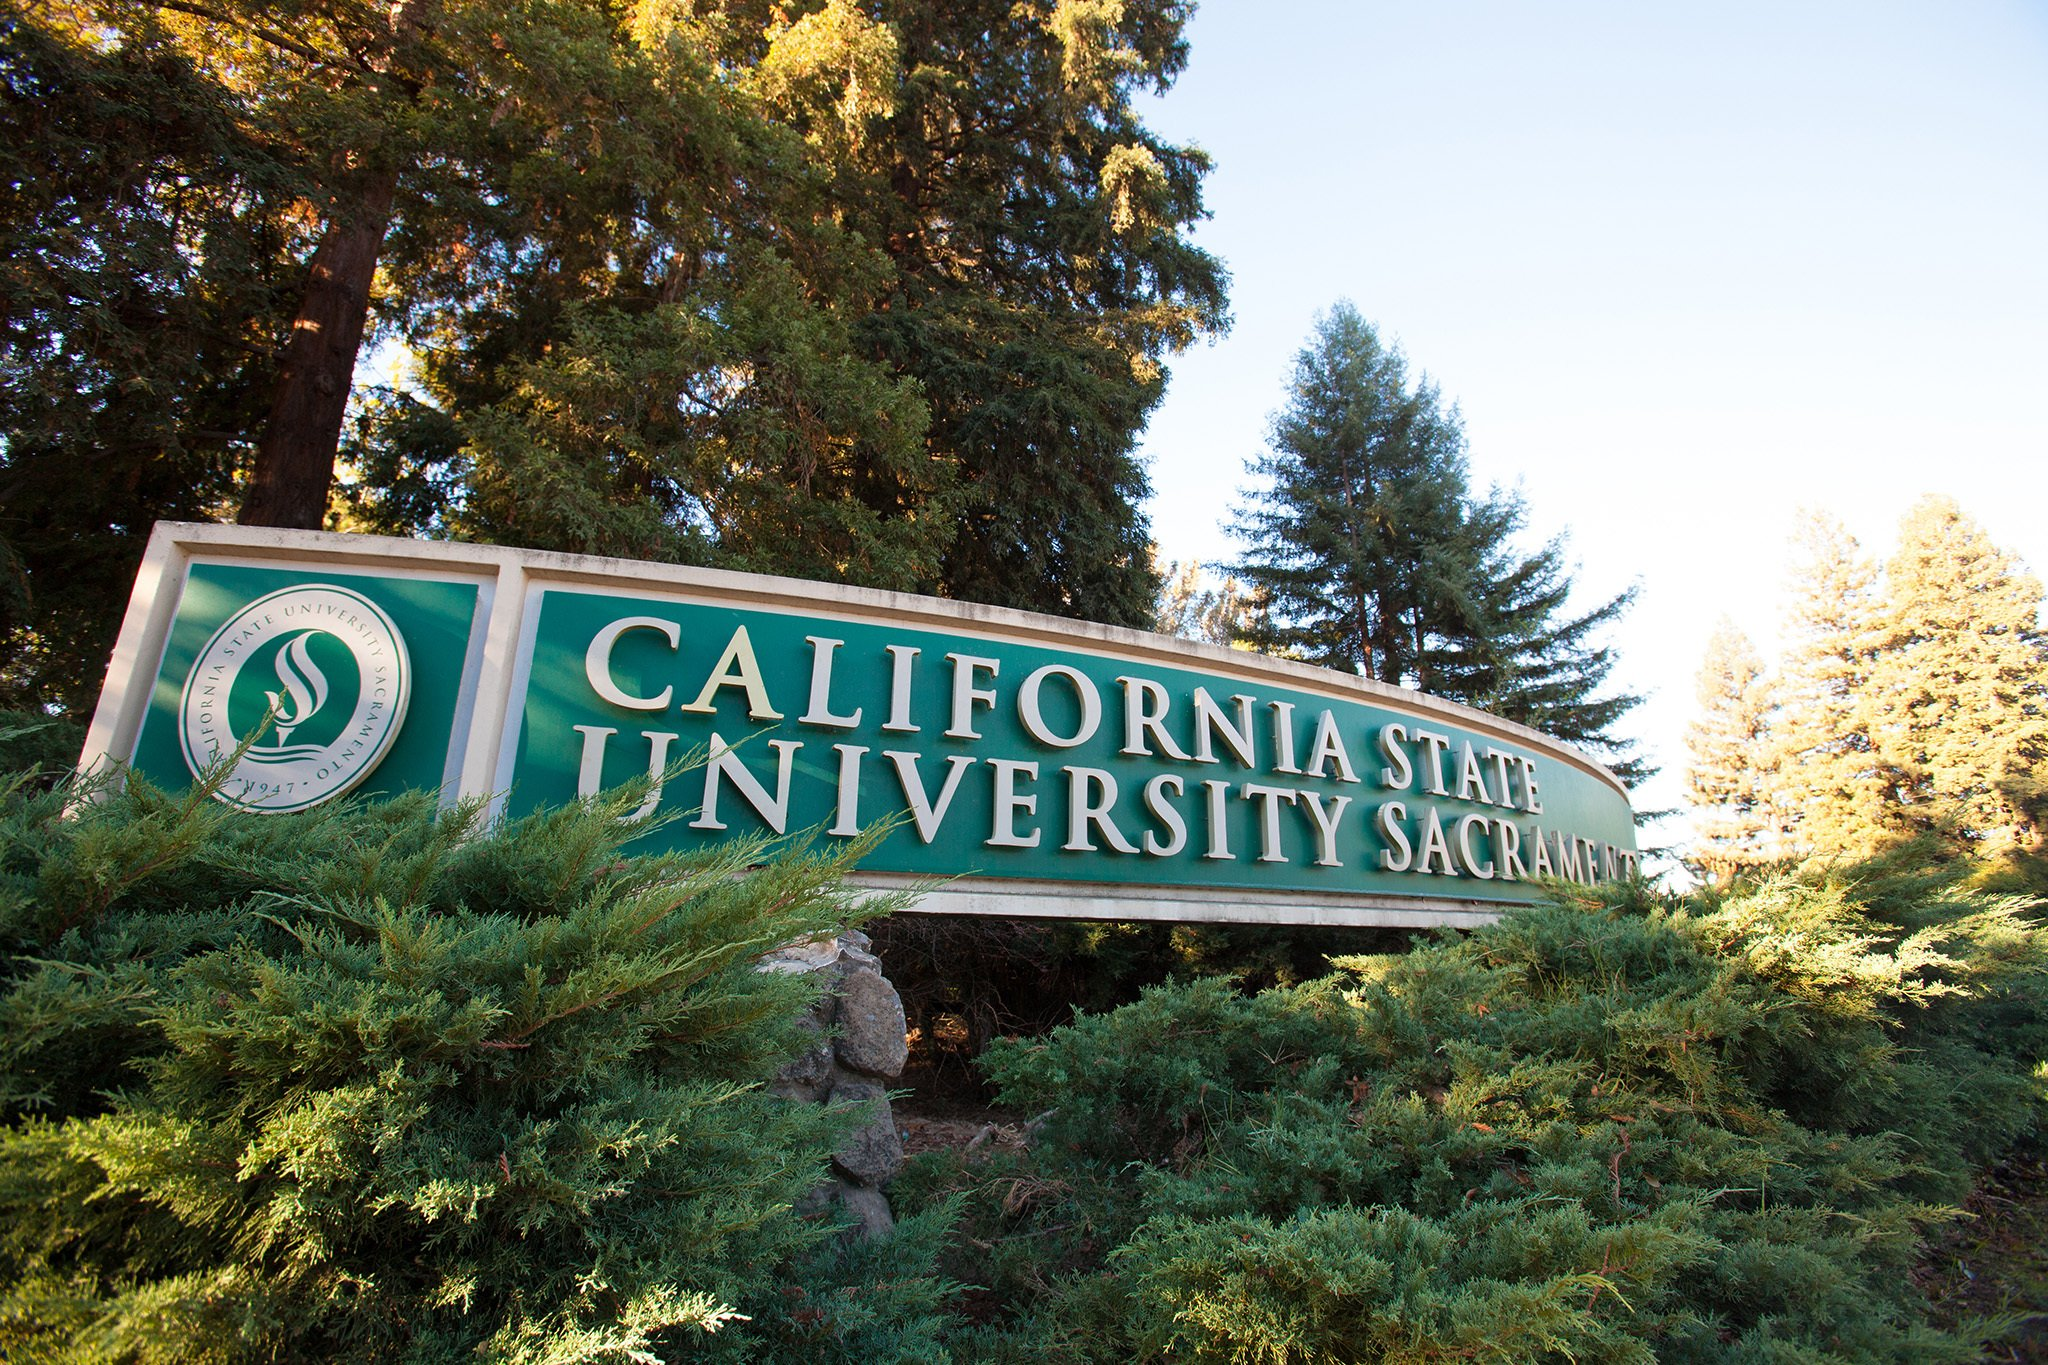 California State University campus